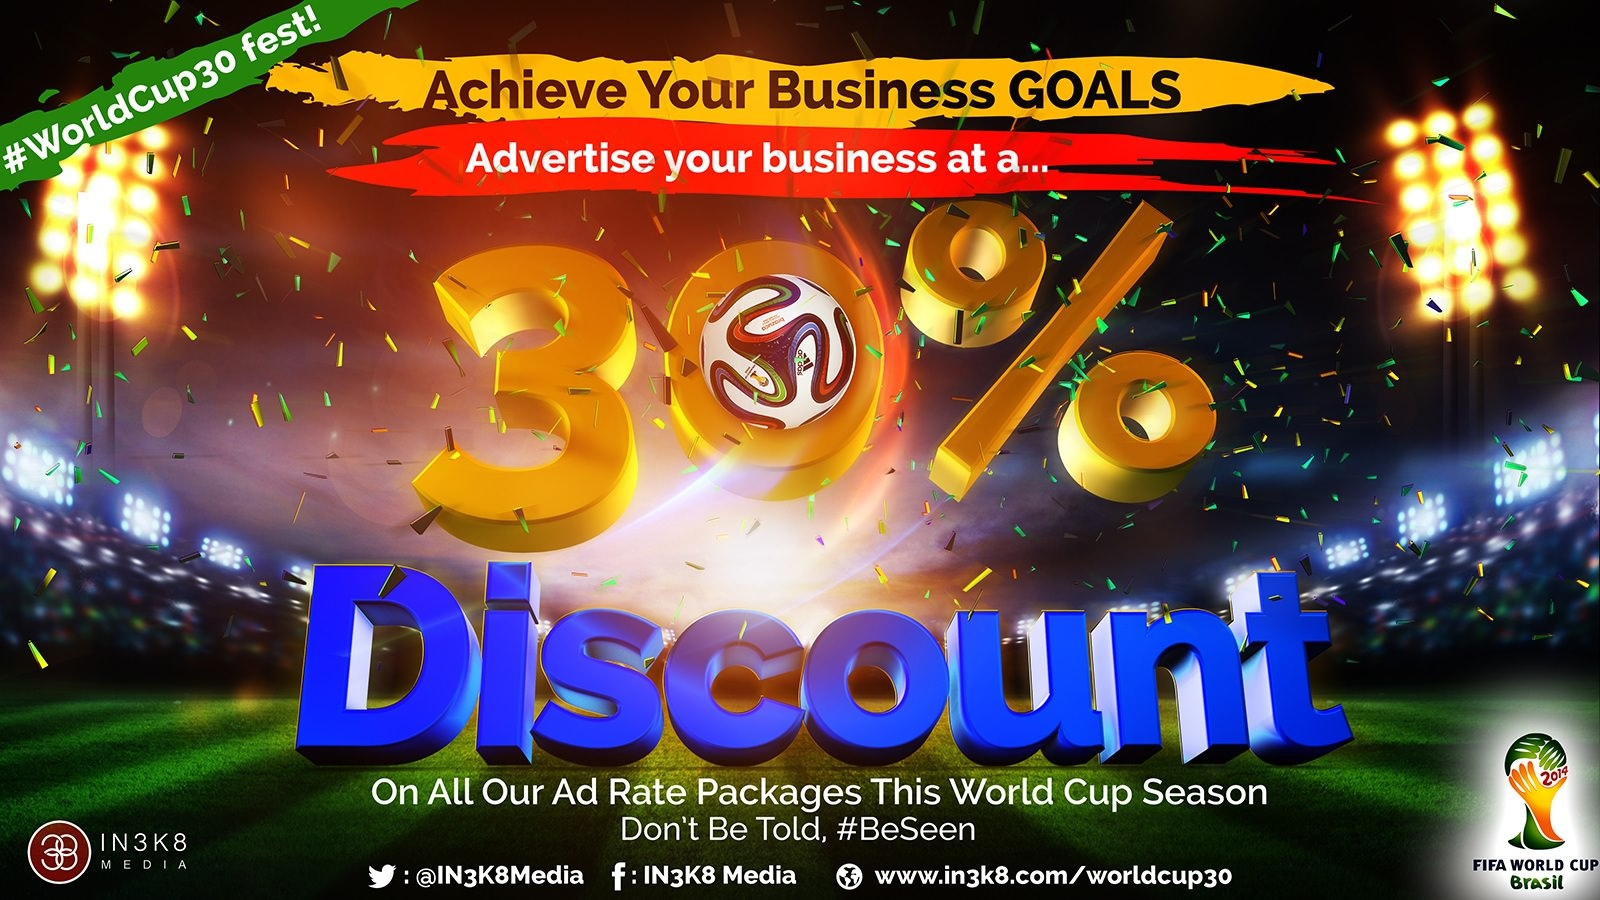 #WorldCup30: Achieve Your Business Goa!s